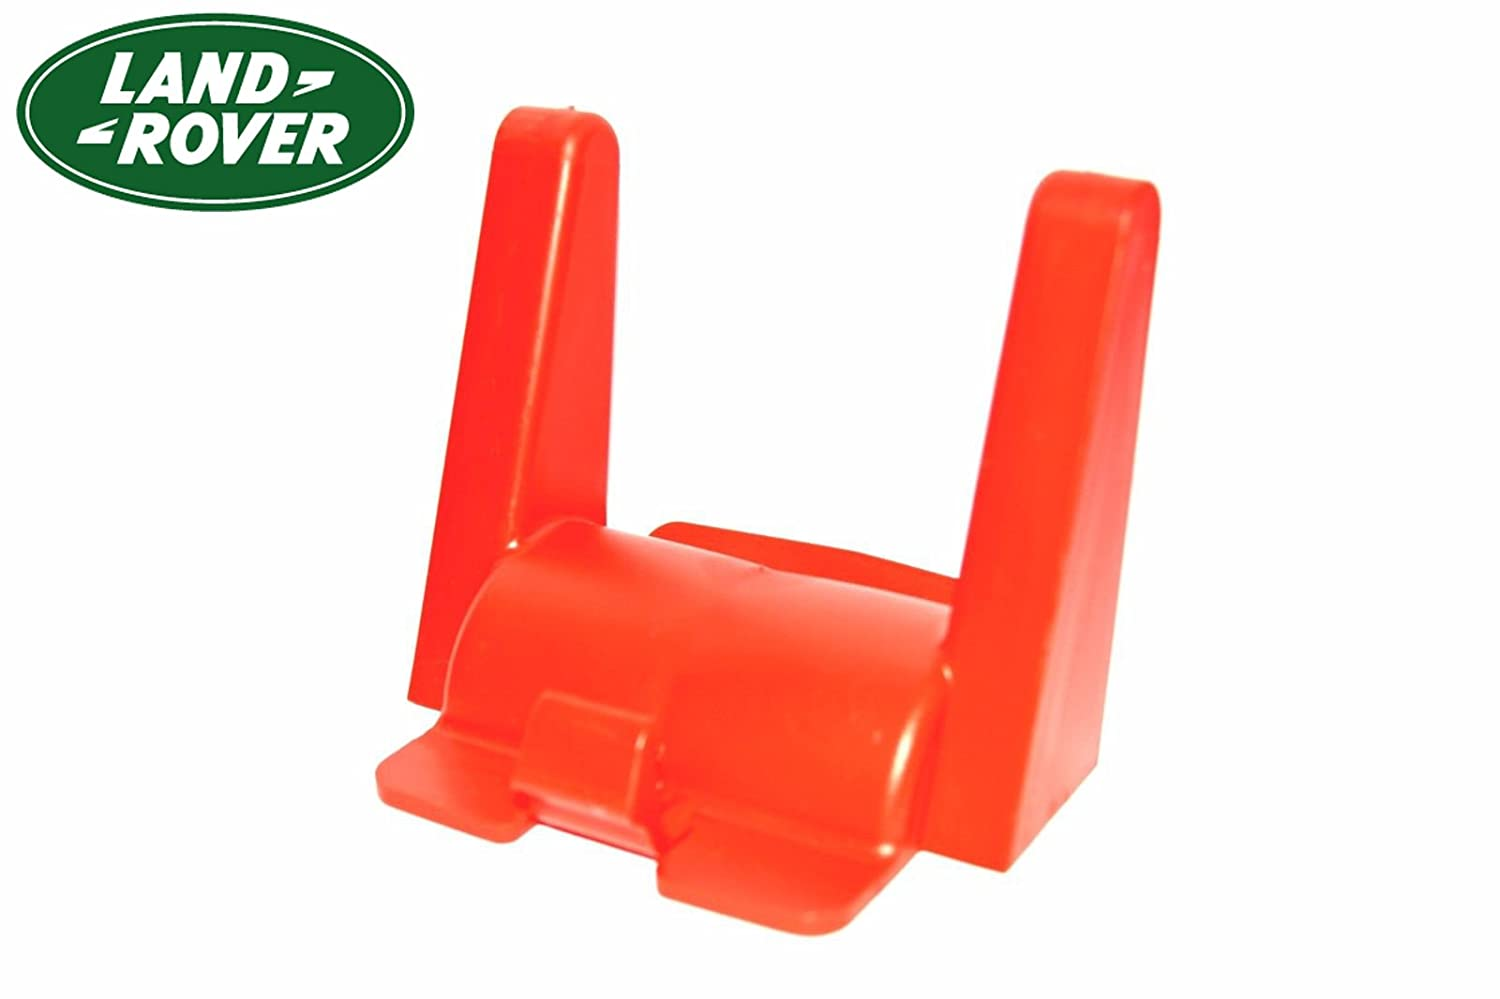 LAND ROVER LR4 DISCOVERY 4 GENUINE TOWING ARMATURE COVER BLANKING PLUG KNG500013 KNG500013q